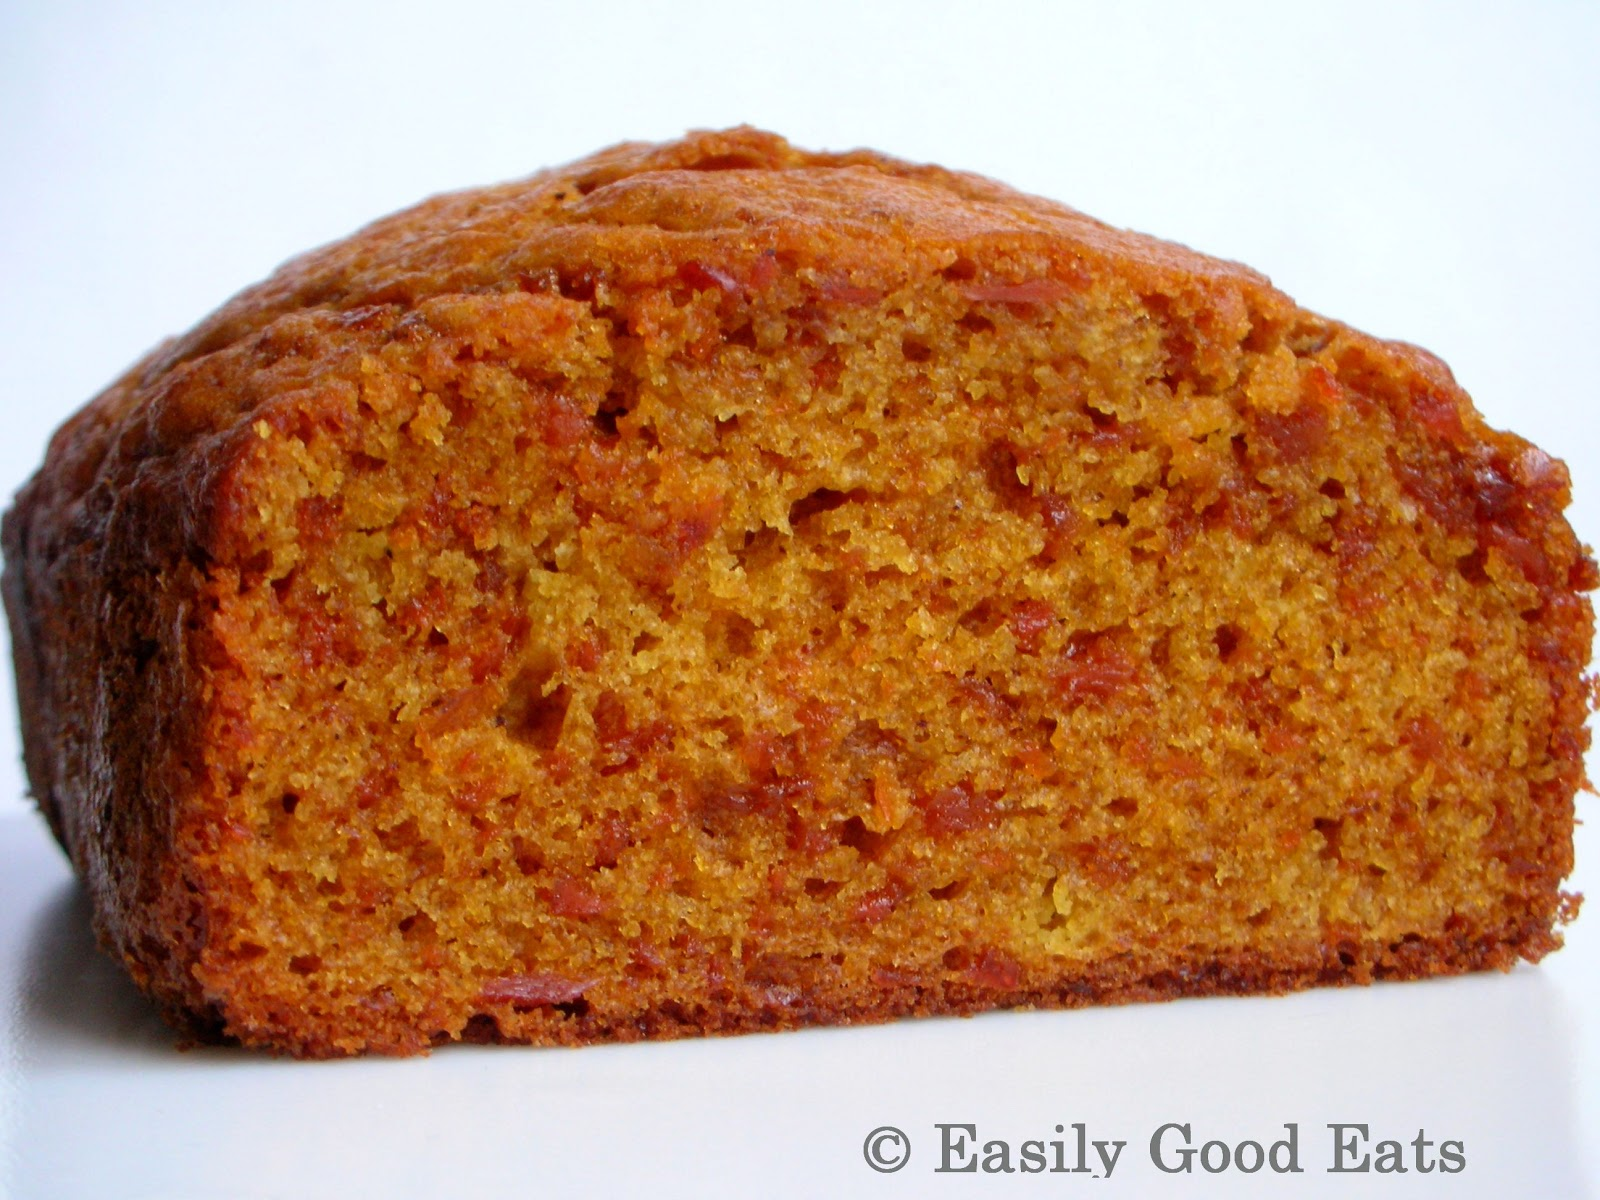 Carrot Pound Cake Calories